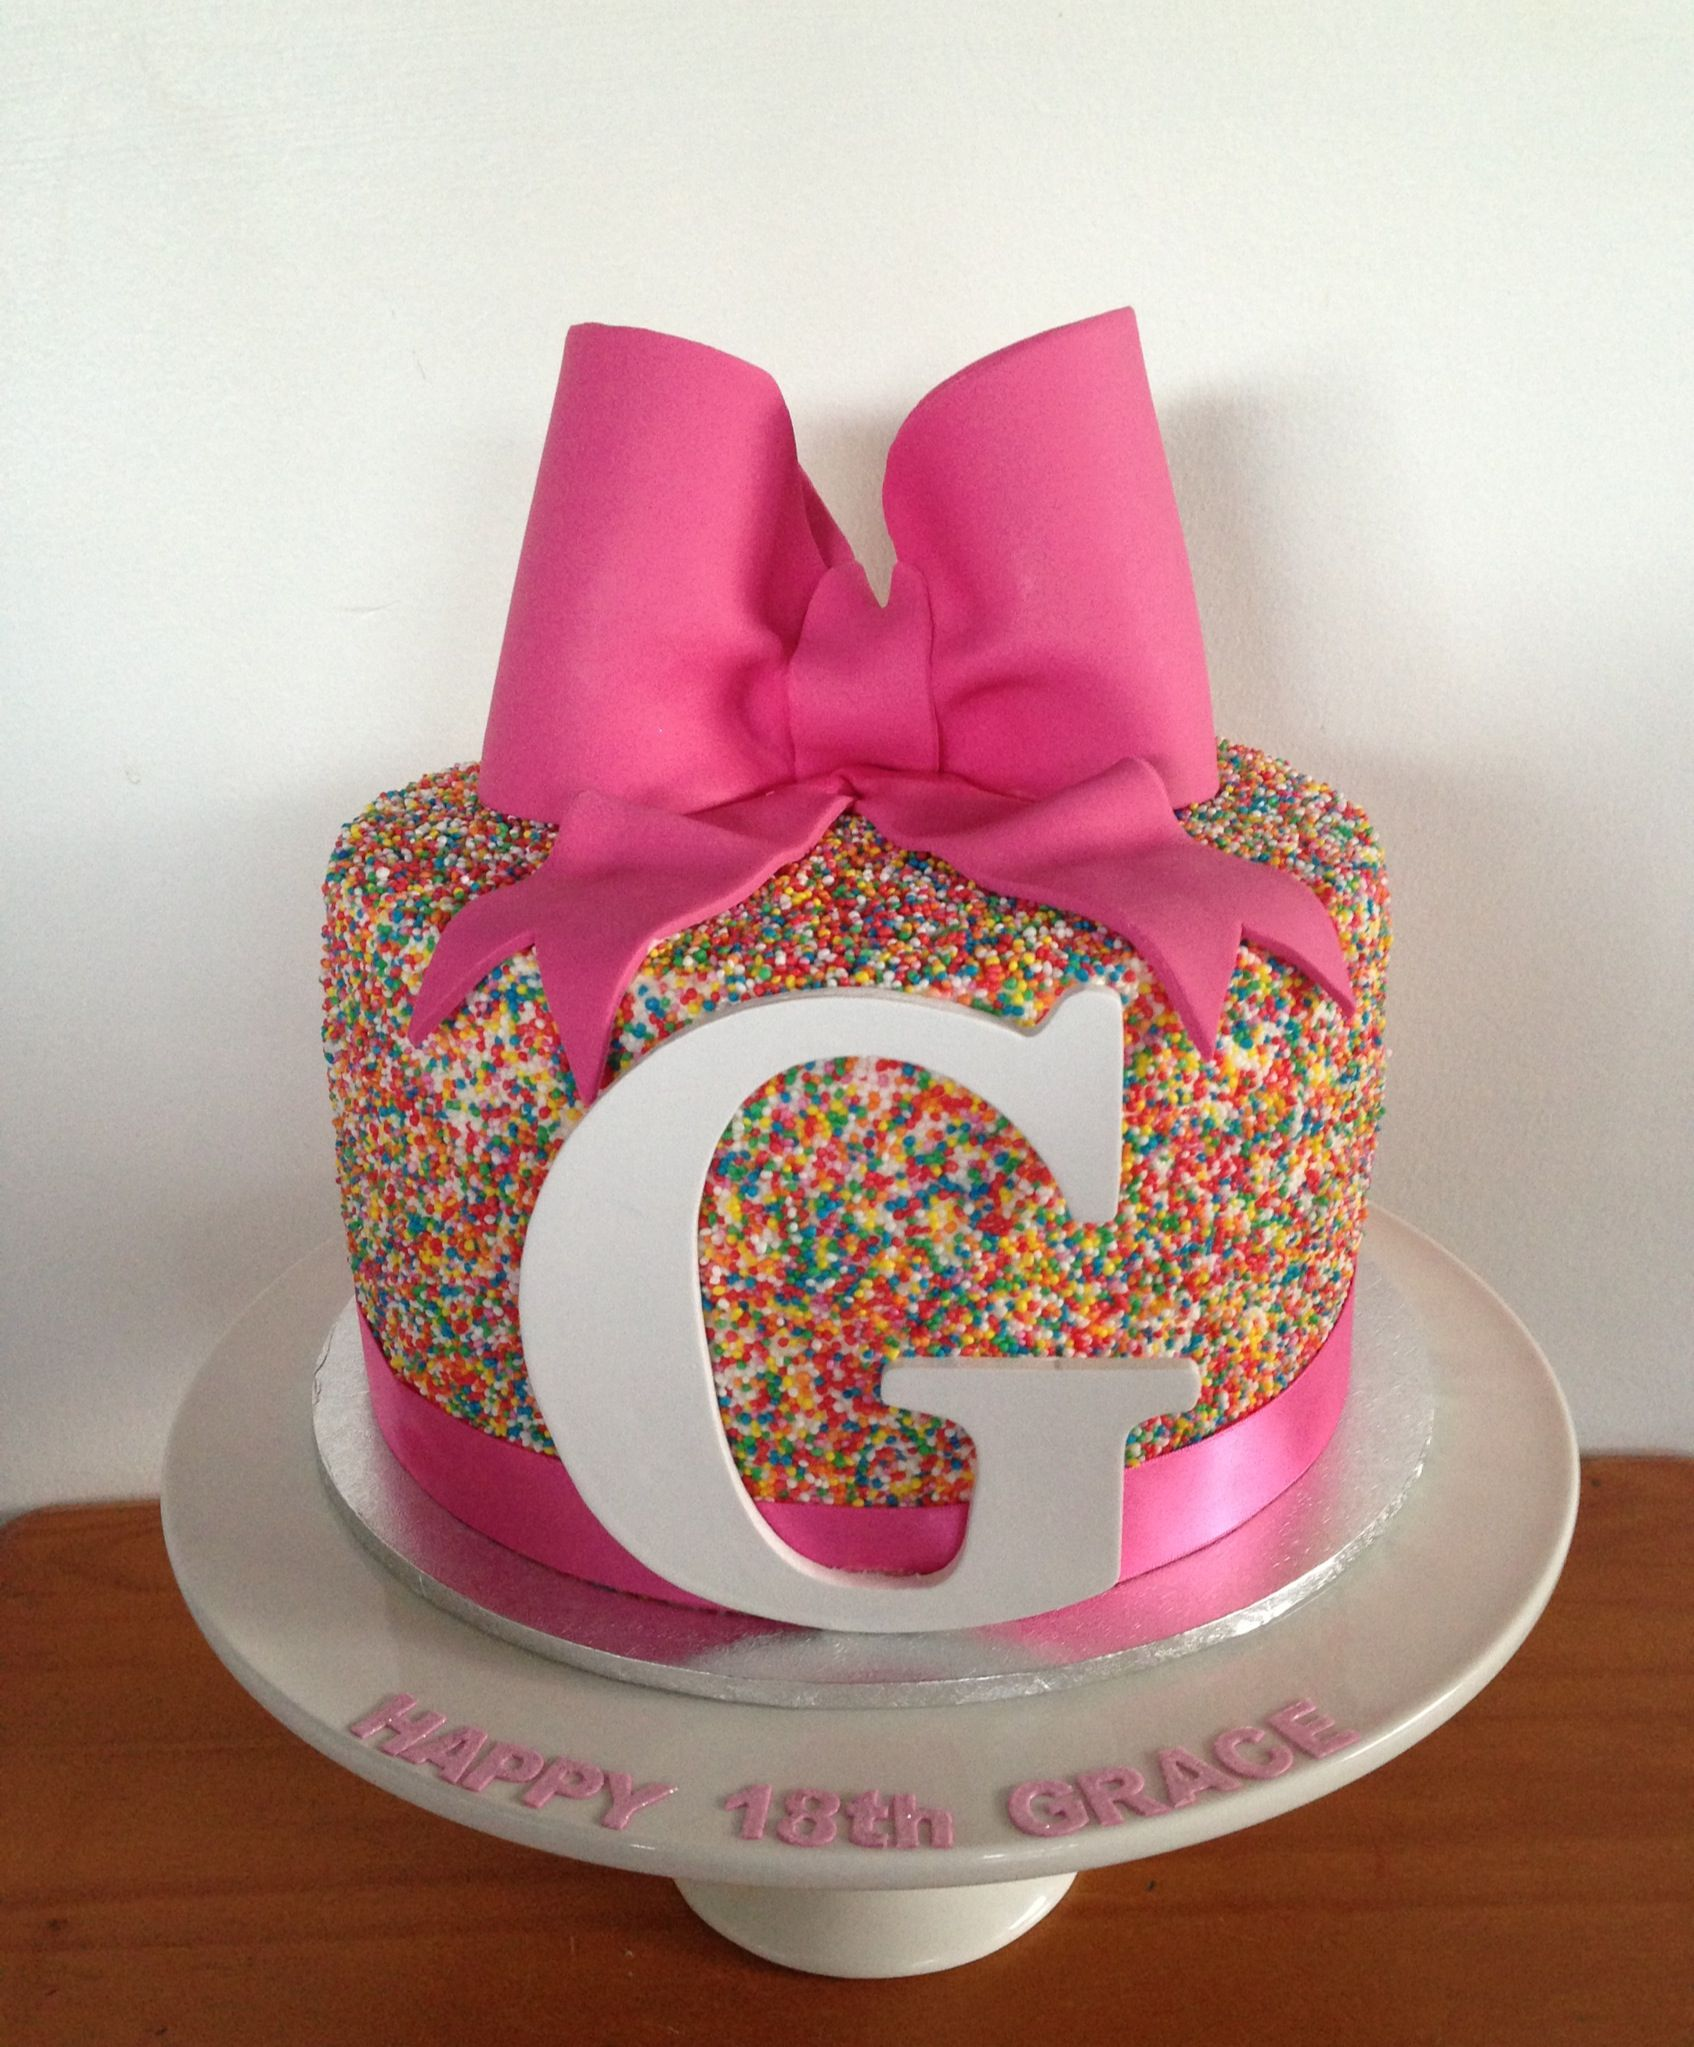 Birthday Cake Decorating Ideas: Pink 18th Birthday Cake With Sprinkles & A Large Pink Bow